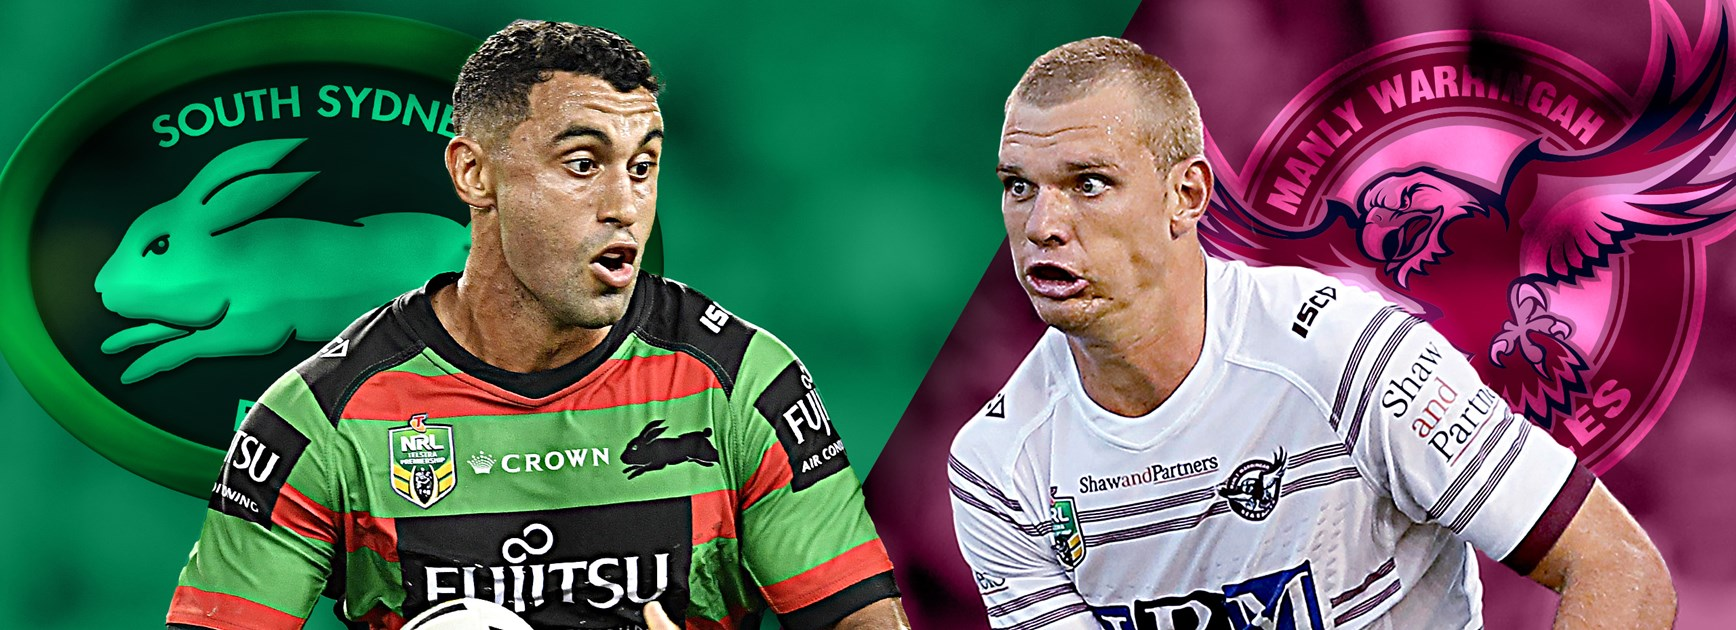 Rabbitohs v Sea Eagles: Hunt recalled, Manly unchanged